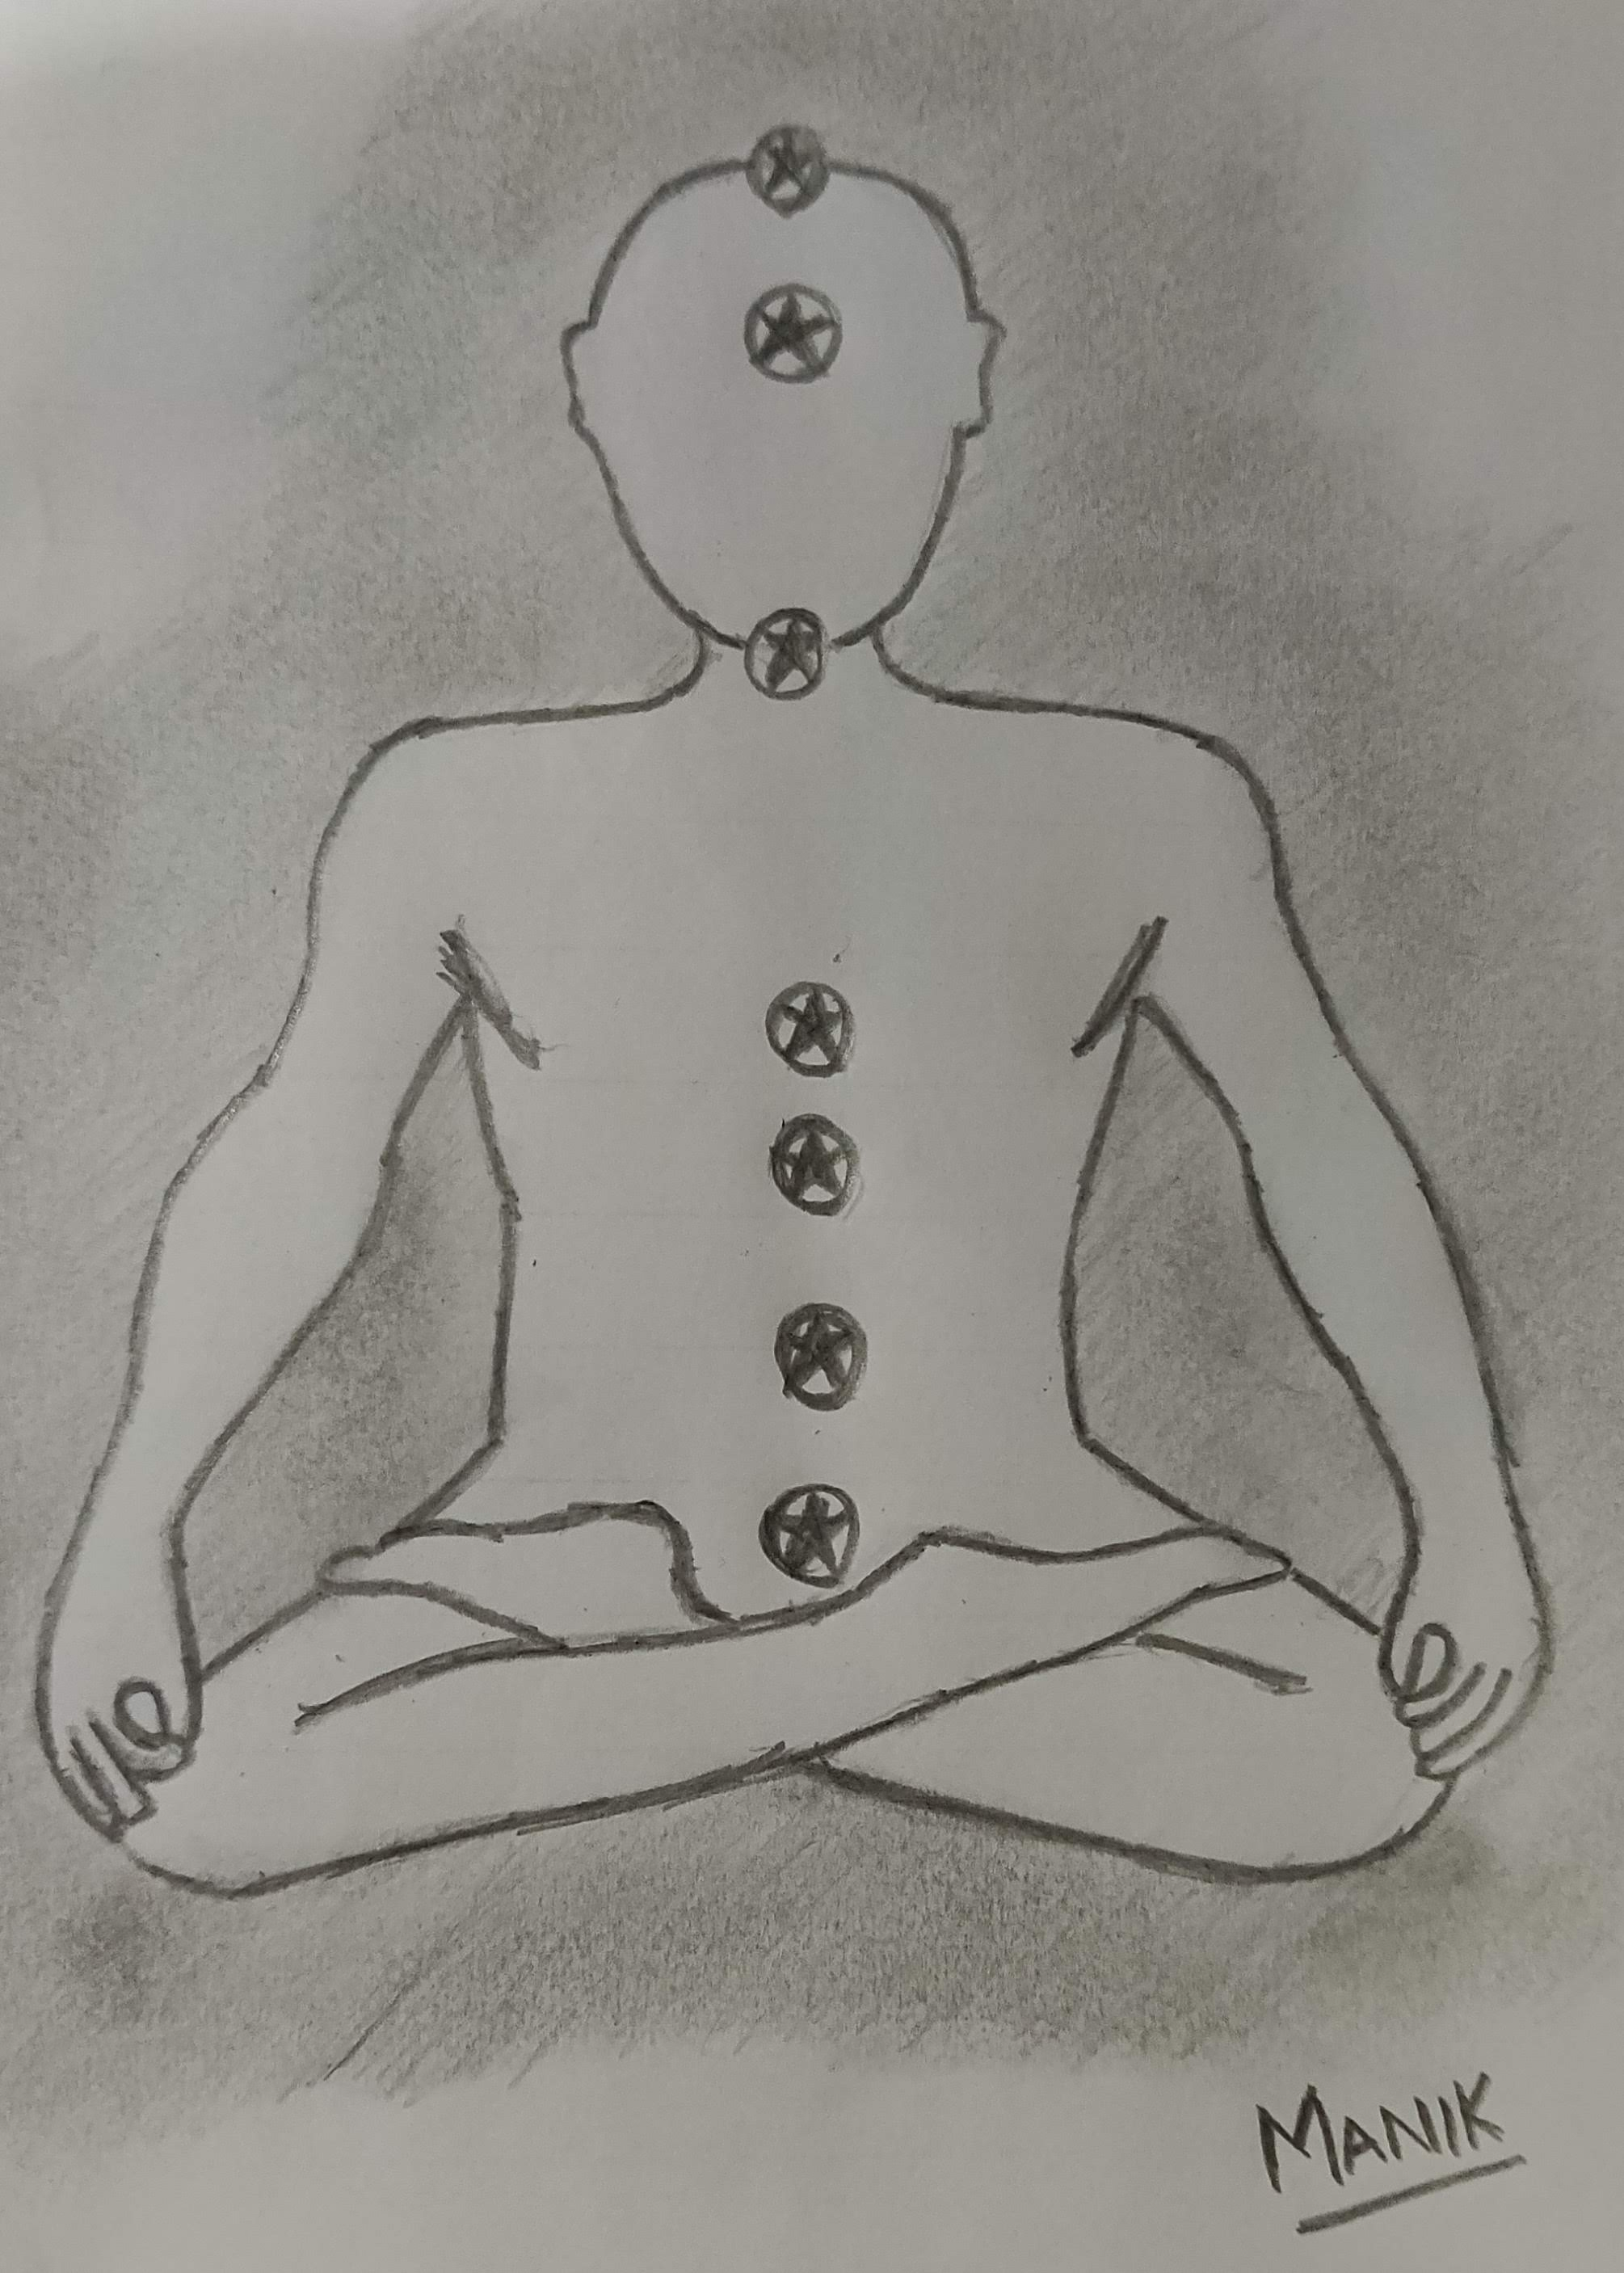 Benefits of Yoga explained in a pencil sketch